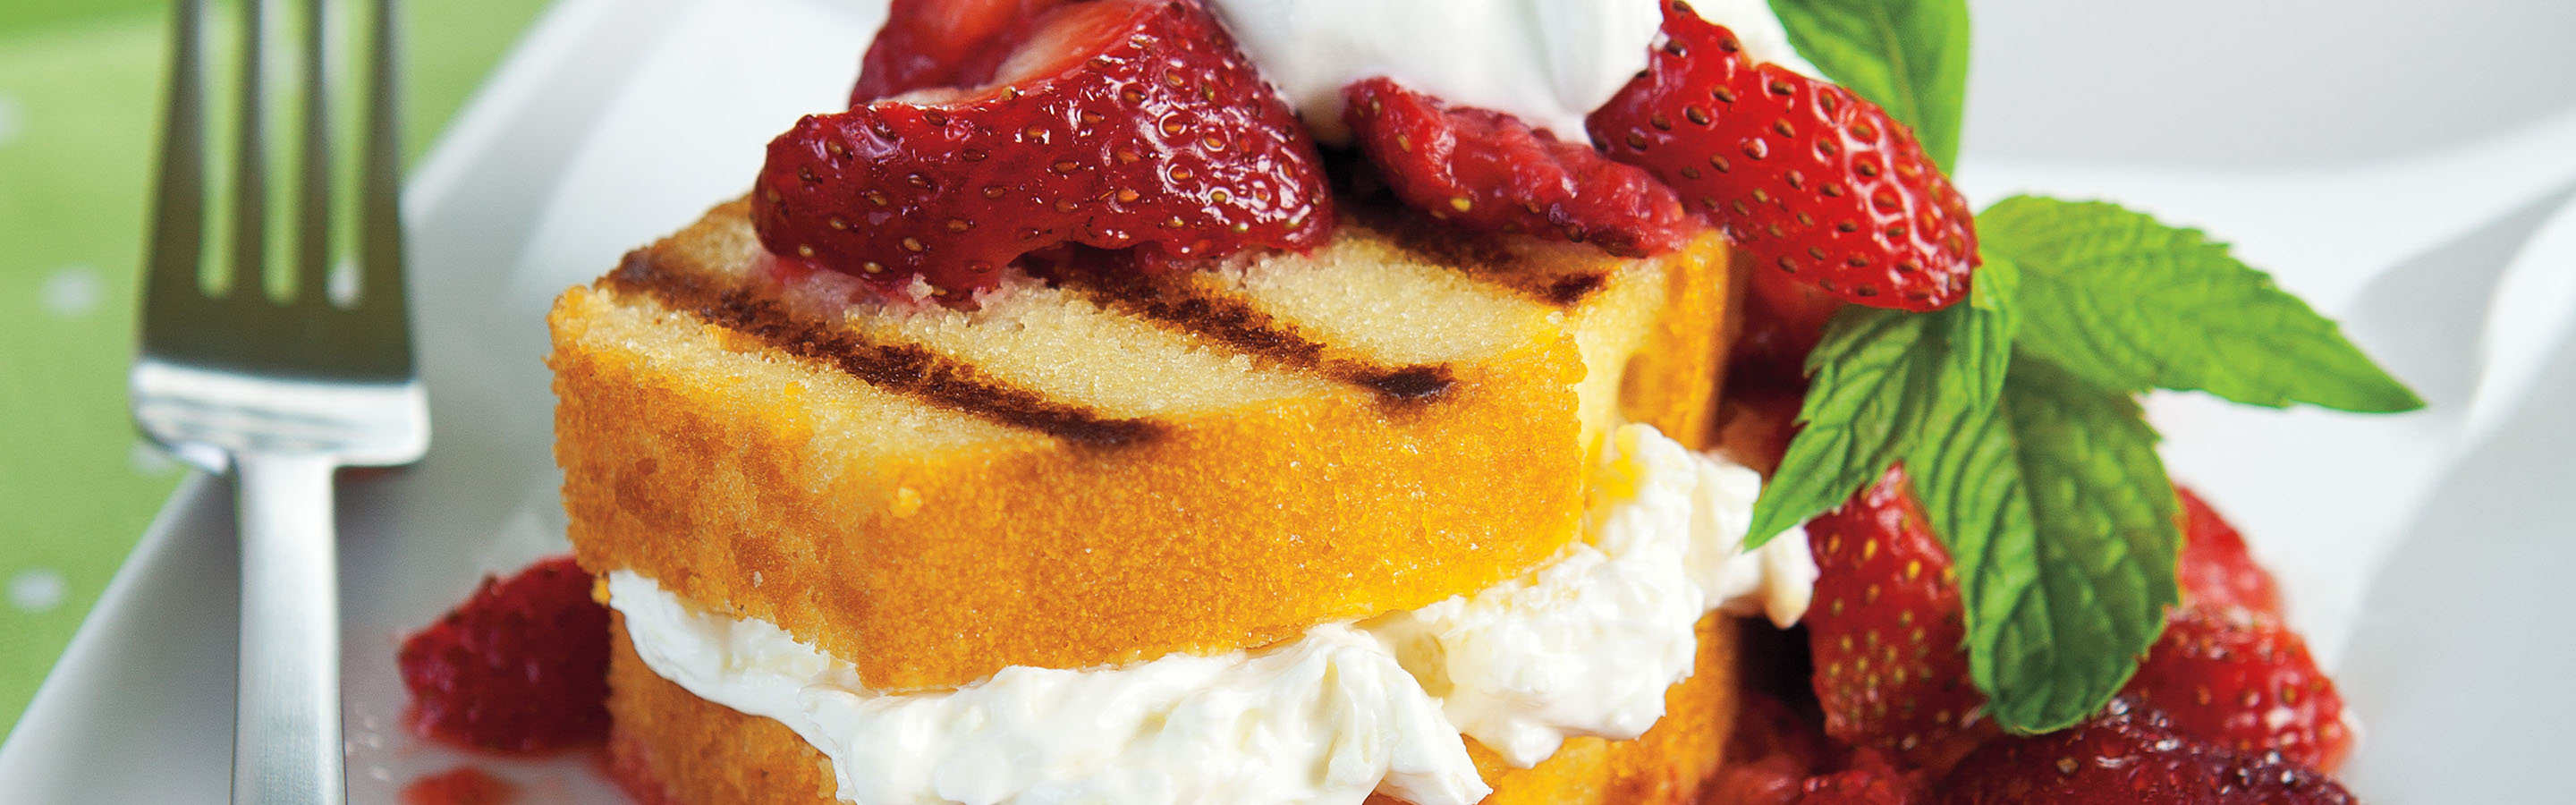 strawberries and cream grilled pound cake